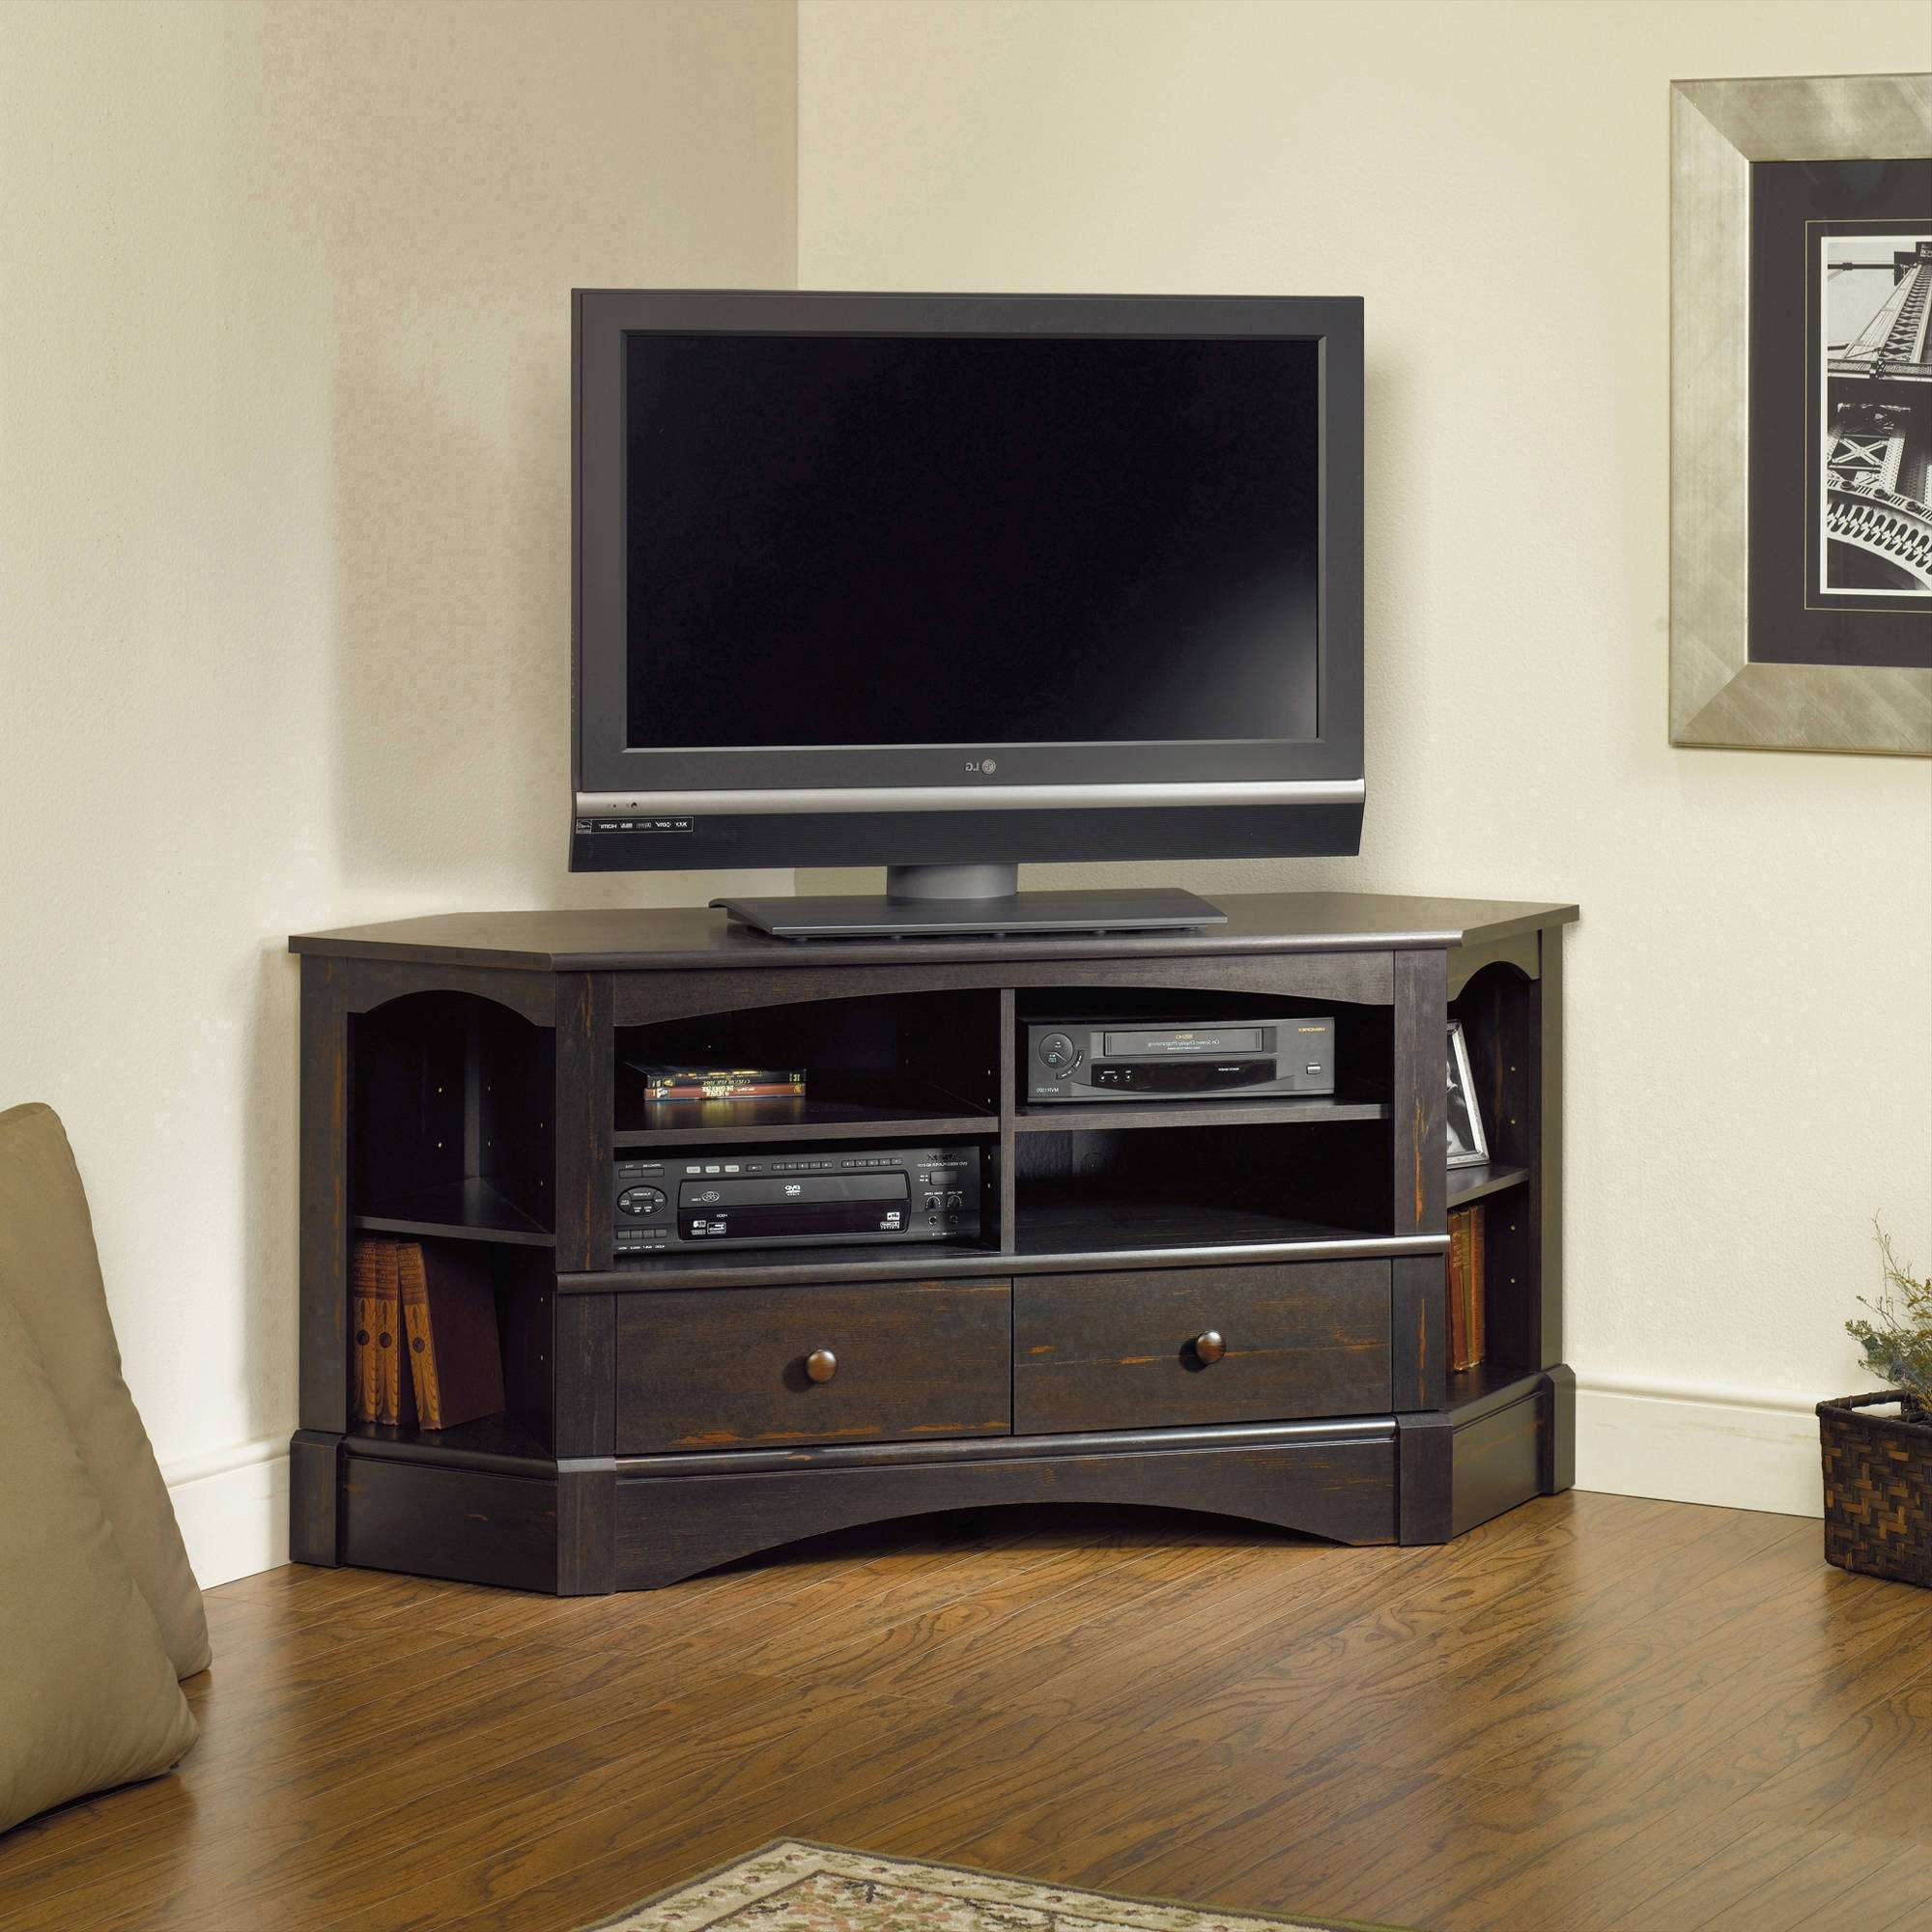 Tv Stand : 32 Unusual 55 Inch Corner Tv Stand With Mount Images For Corner Tv Stands For 60 Inch Tv (View 11 of 15)